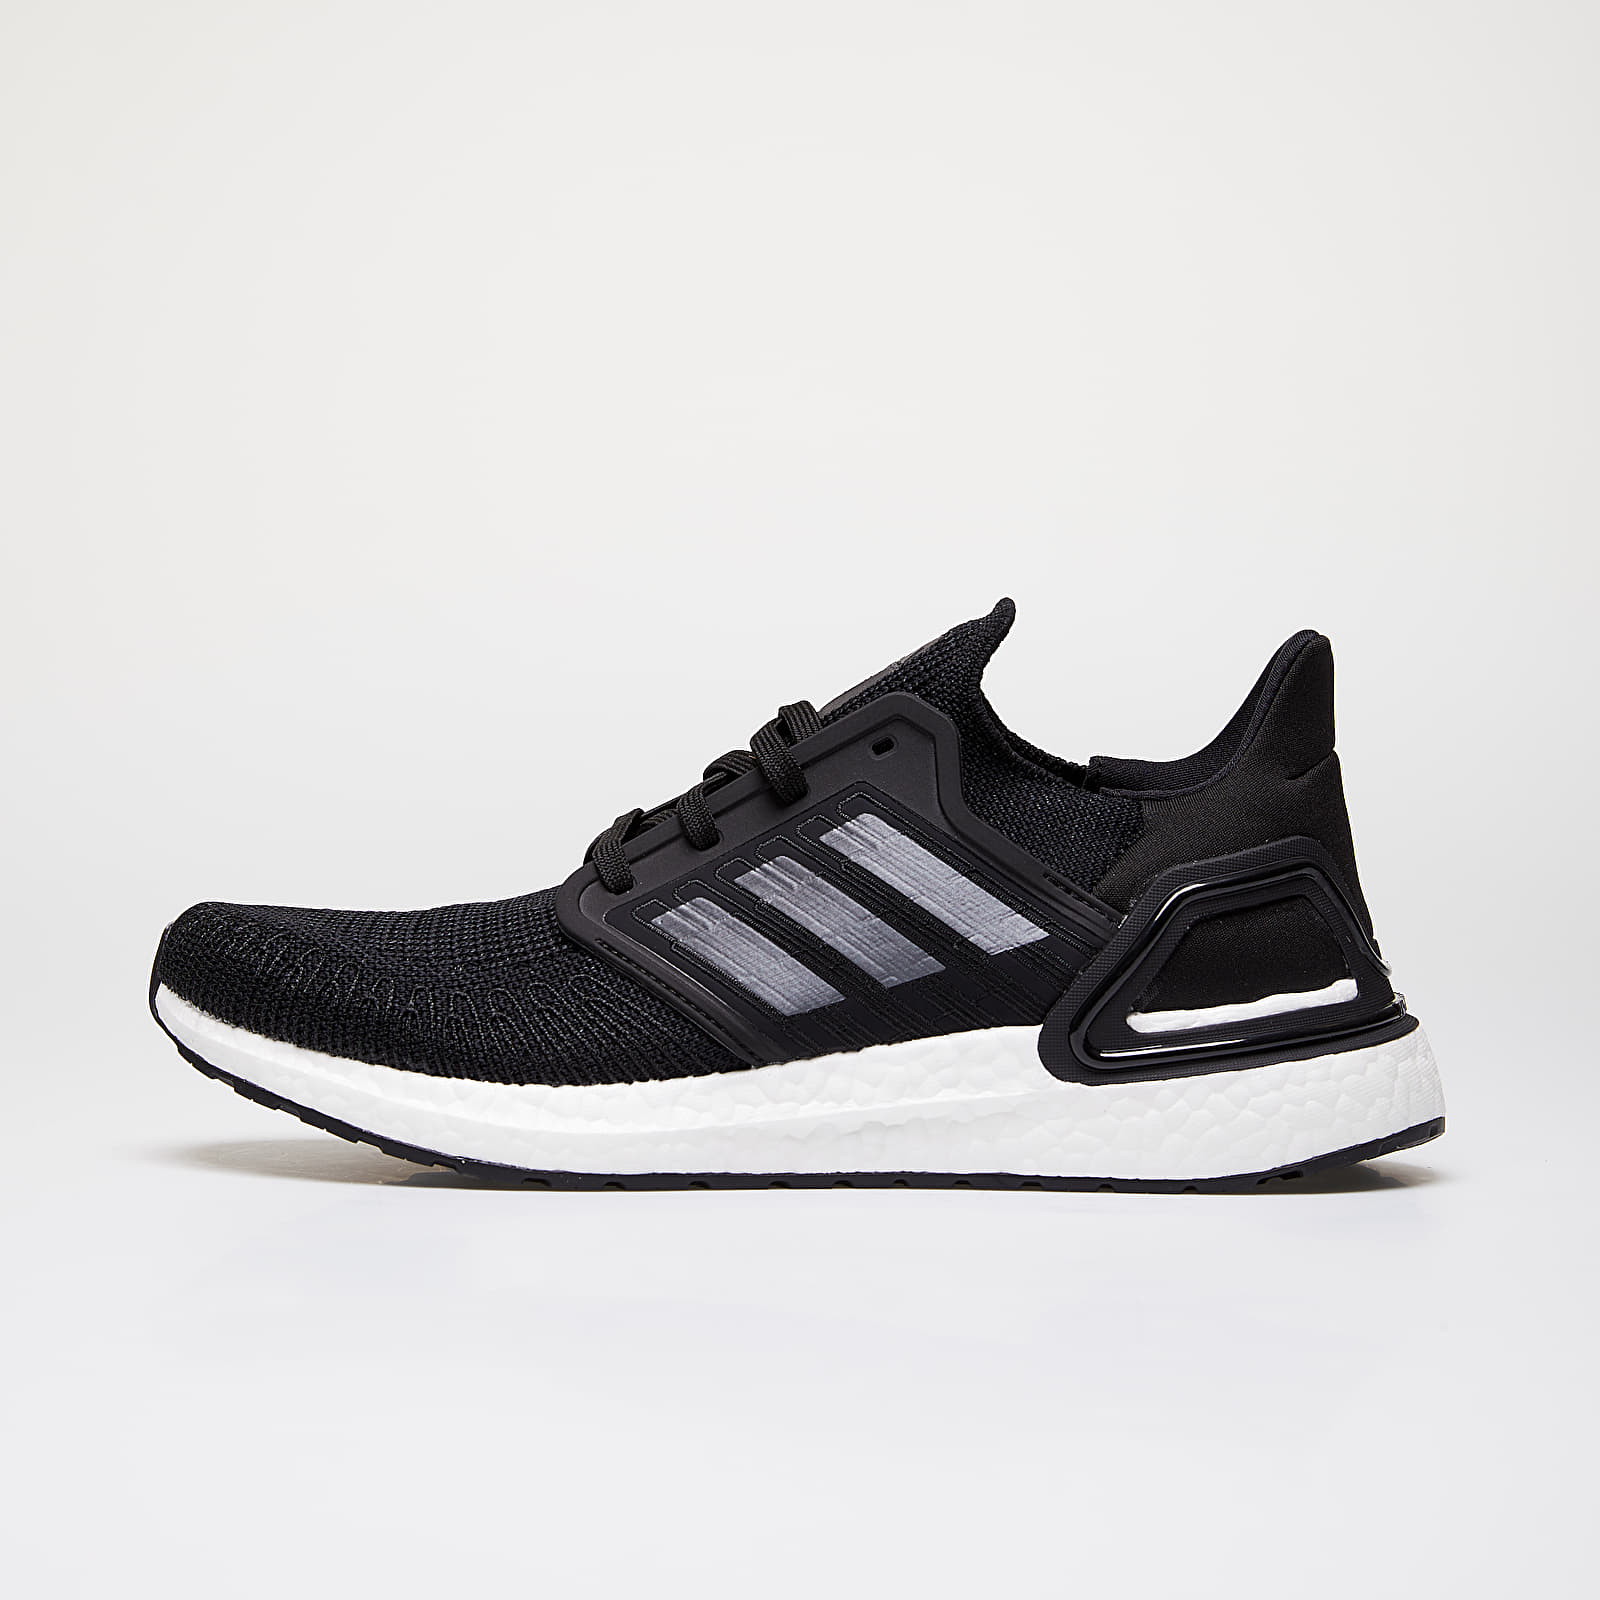 Chaussures et baskets homme adidas UltraBOOST 20 Core Black/ Night Metalic/ Ftw White